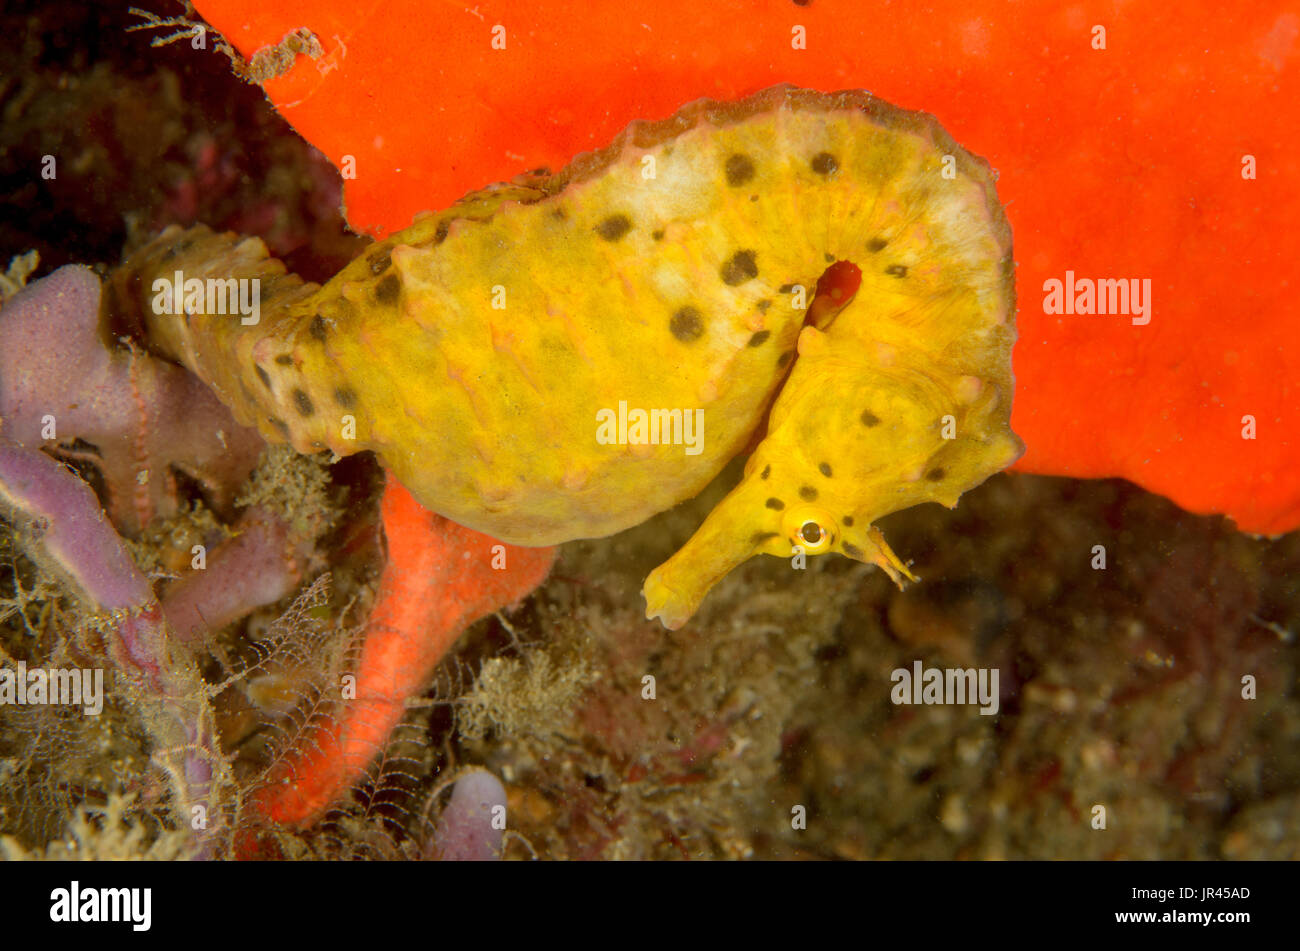 Female pot-bellied seahorse, Hippocampus abdominalis at The Leap, Kurnell, New South Wales, Australia. Depth: 12.6 m. - Stock Image